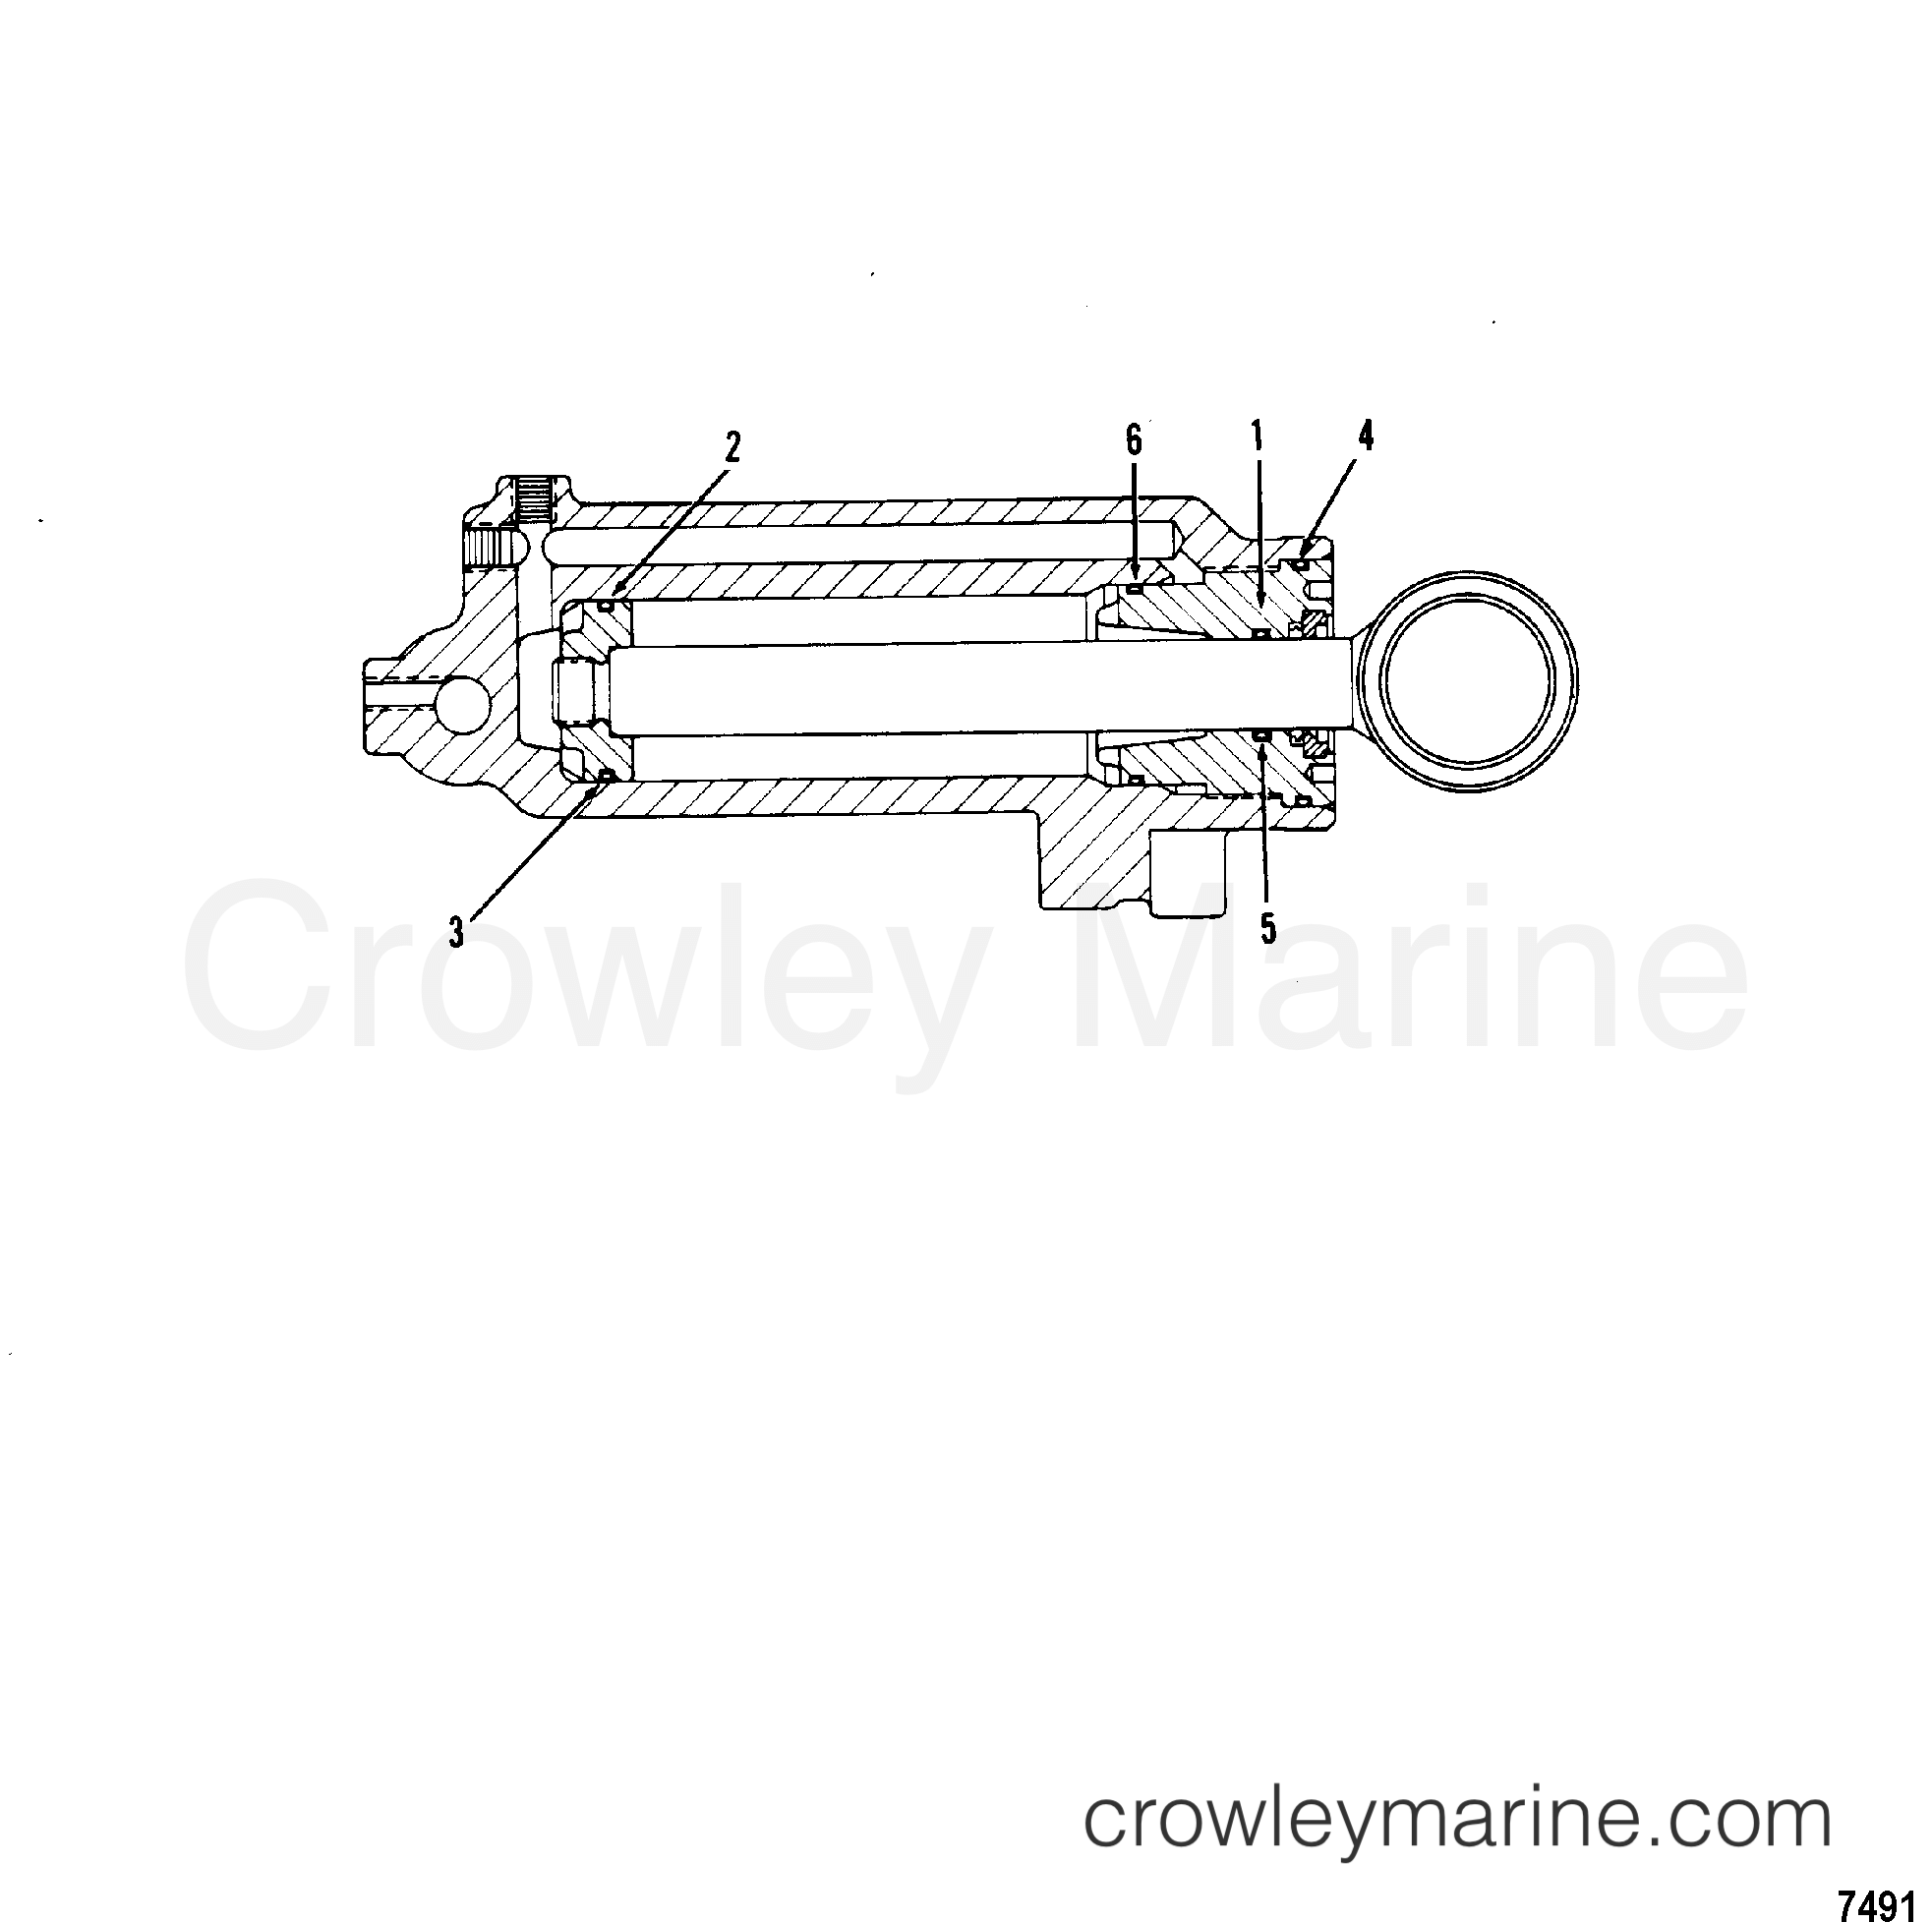 1980 Mercury Outboard 70 [ELPT] -  1070620 POWER TRIM CYLINDER REPAIR KITS, USE WITH 92194A14 section